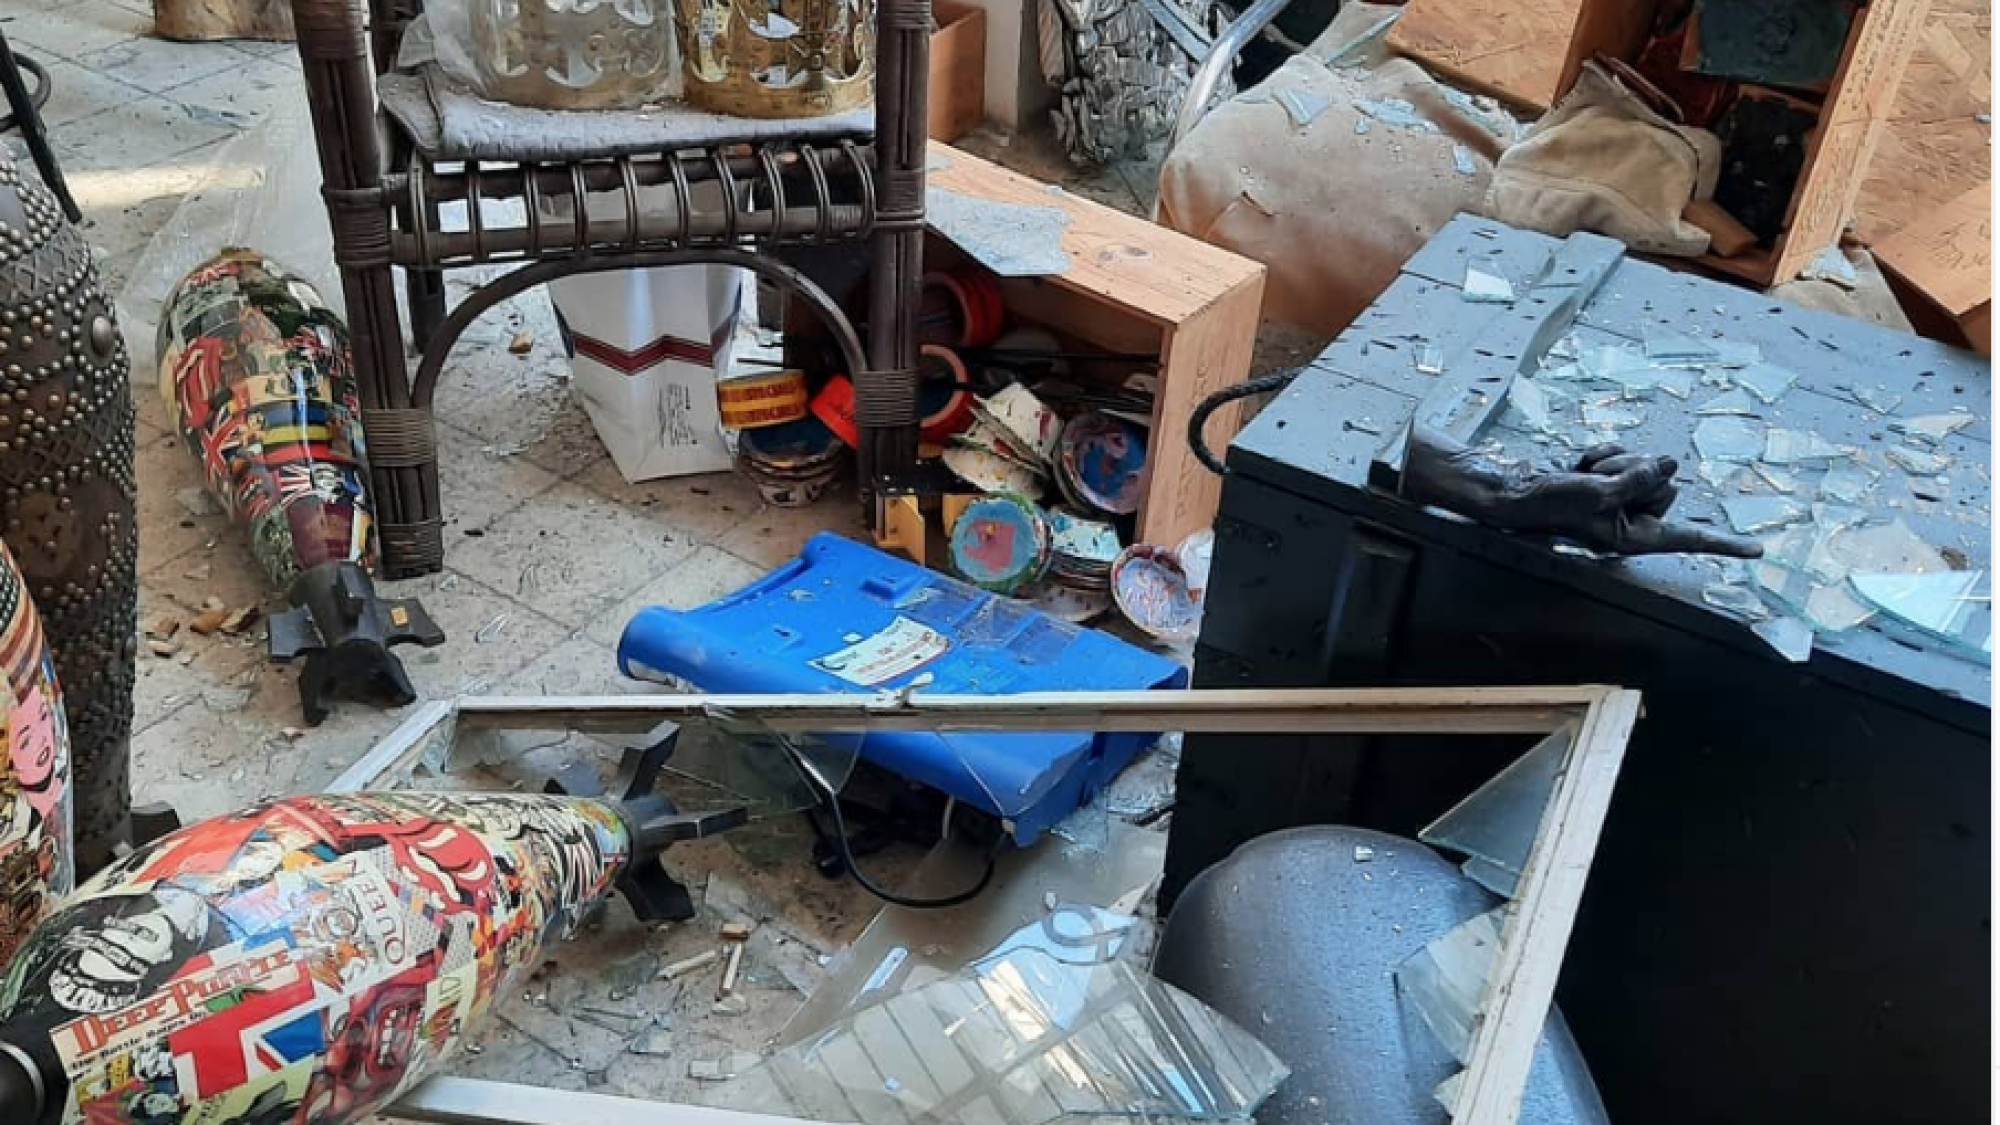 image of an art studio damaged by an explosion